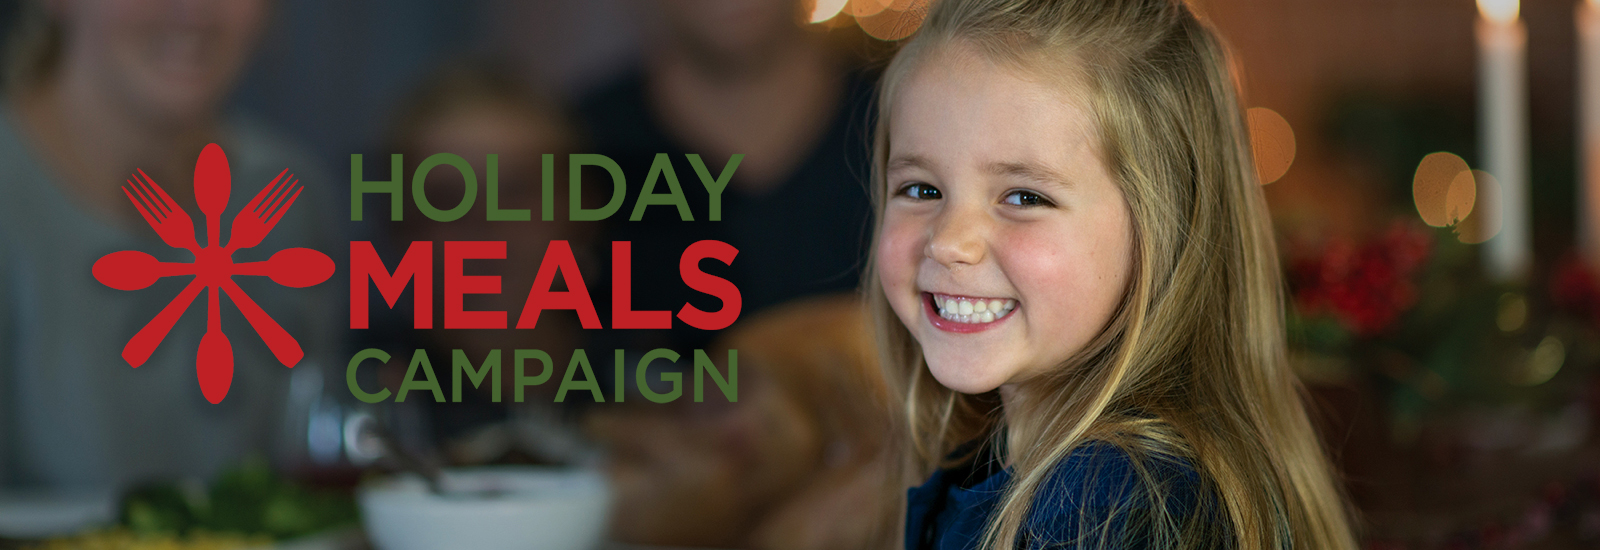 Holiday Meals Campaign.png